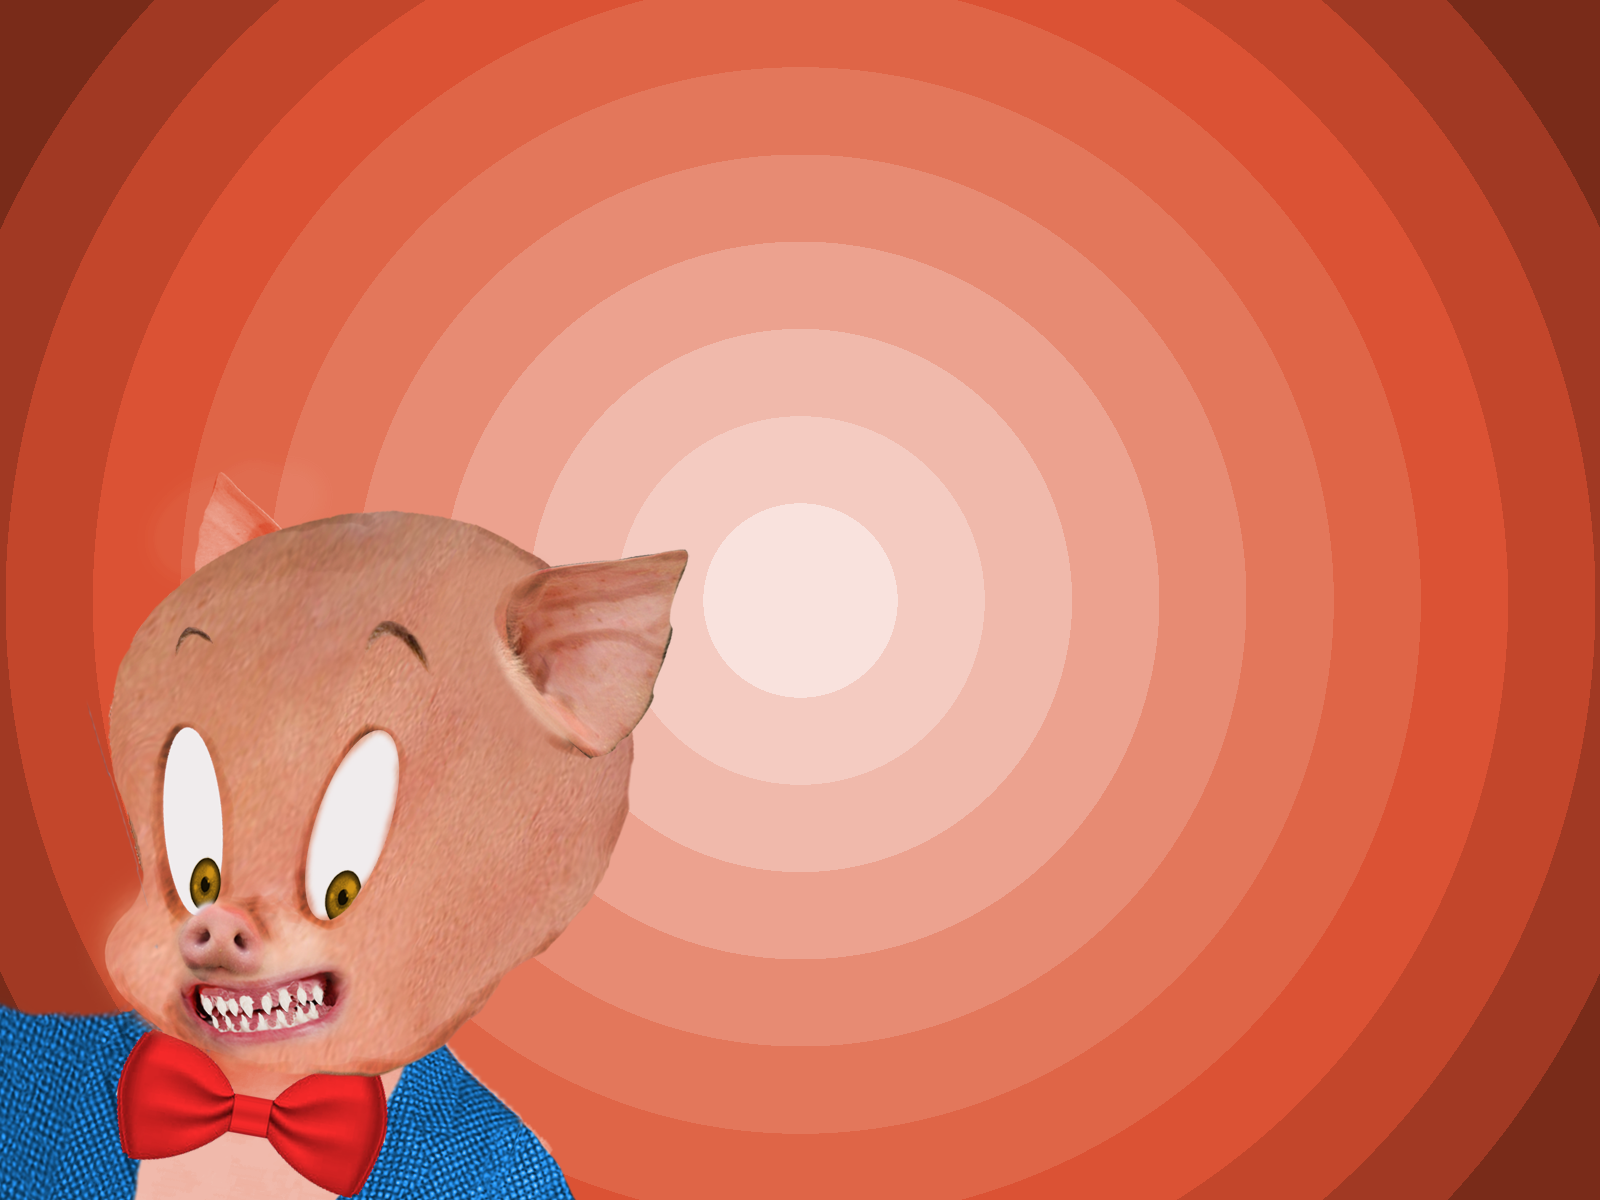 Porky Pig In Real Life By Mihovil Lisjak On Dribbble